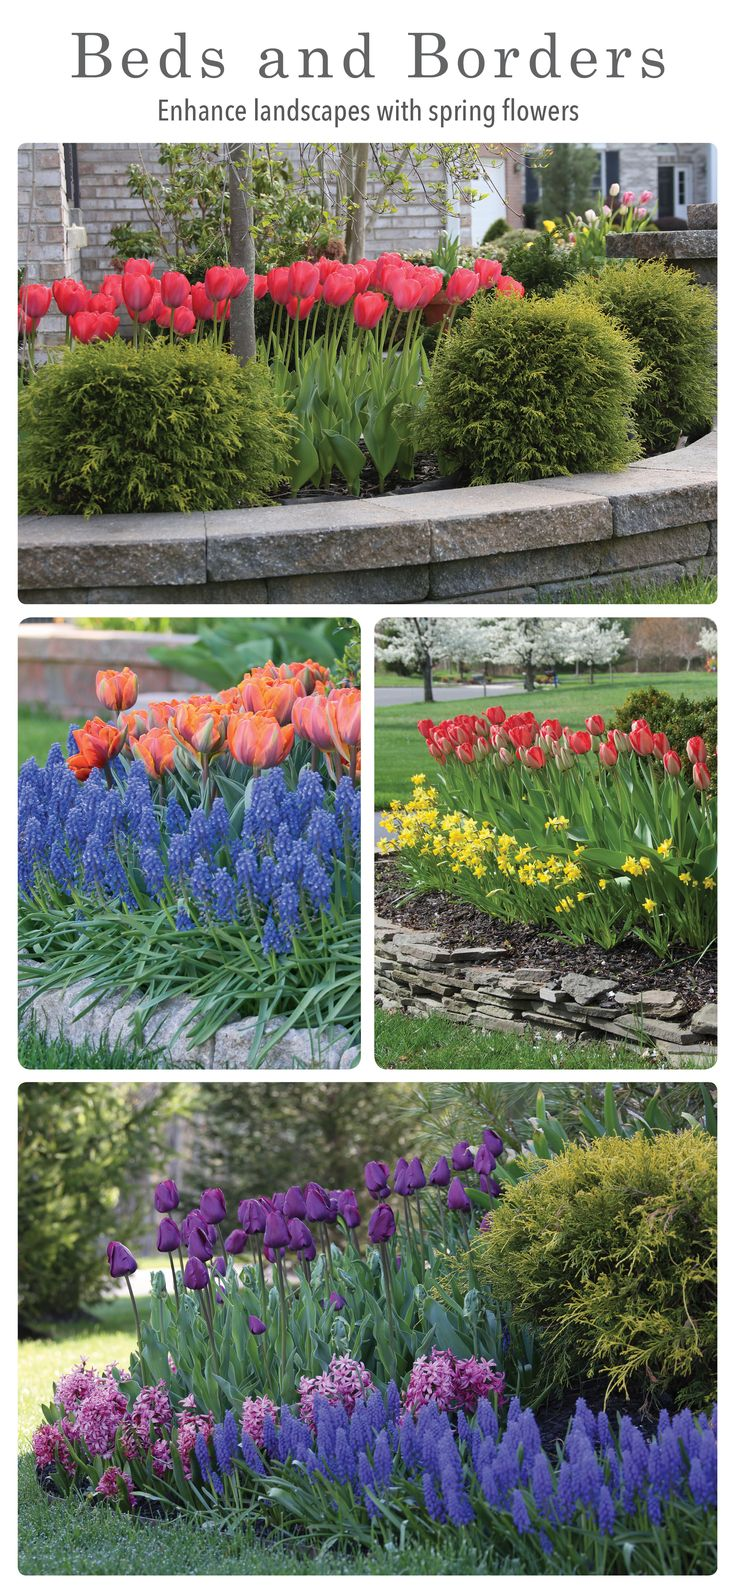 Best 20 spring garden ideas on pinterest spring flowers dream best 20 spring garden ideas on pinterest spring flowers dream garden and tulips garden dhlflorist Images